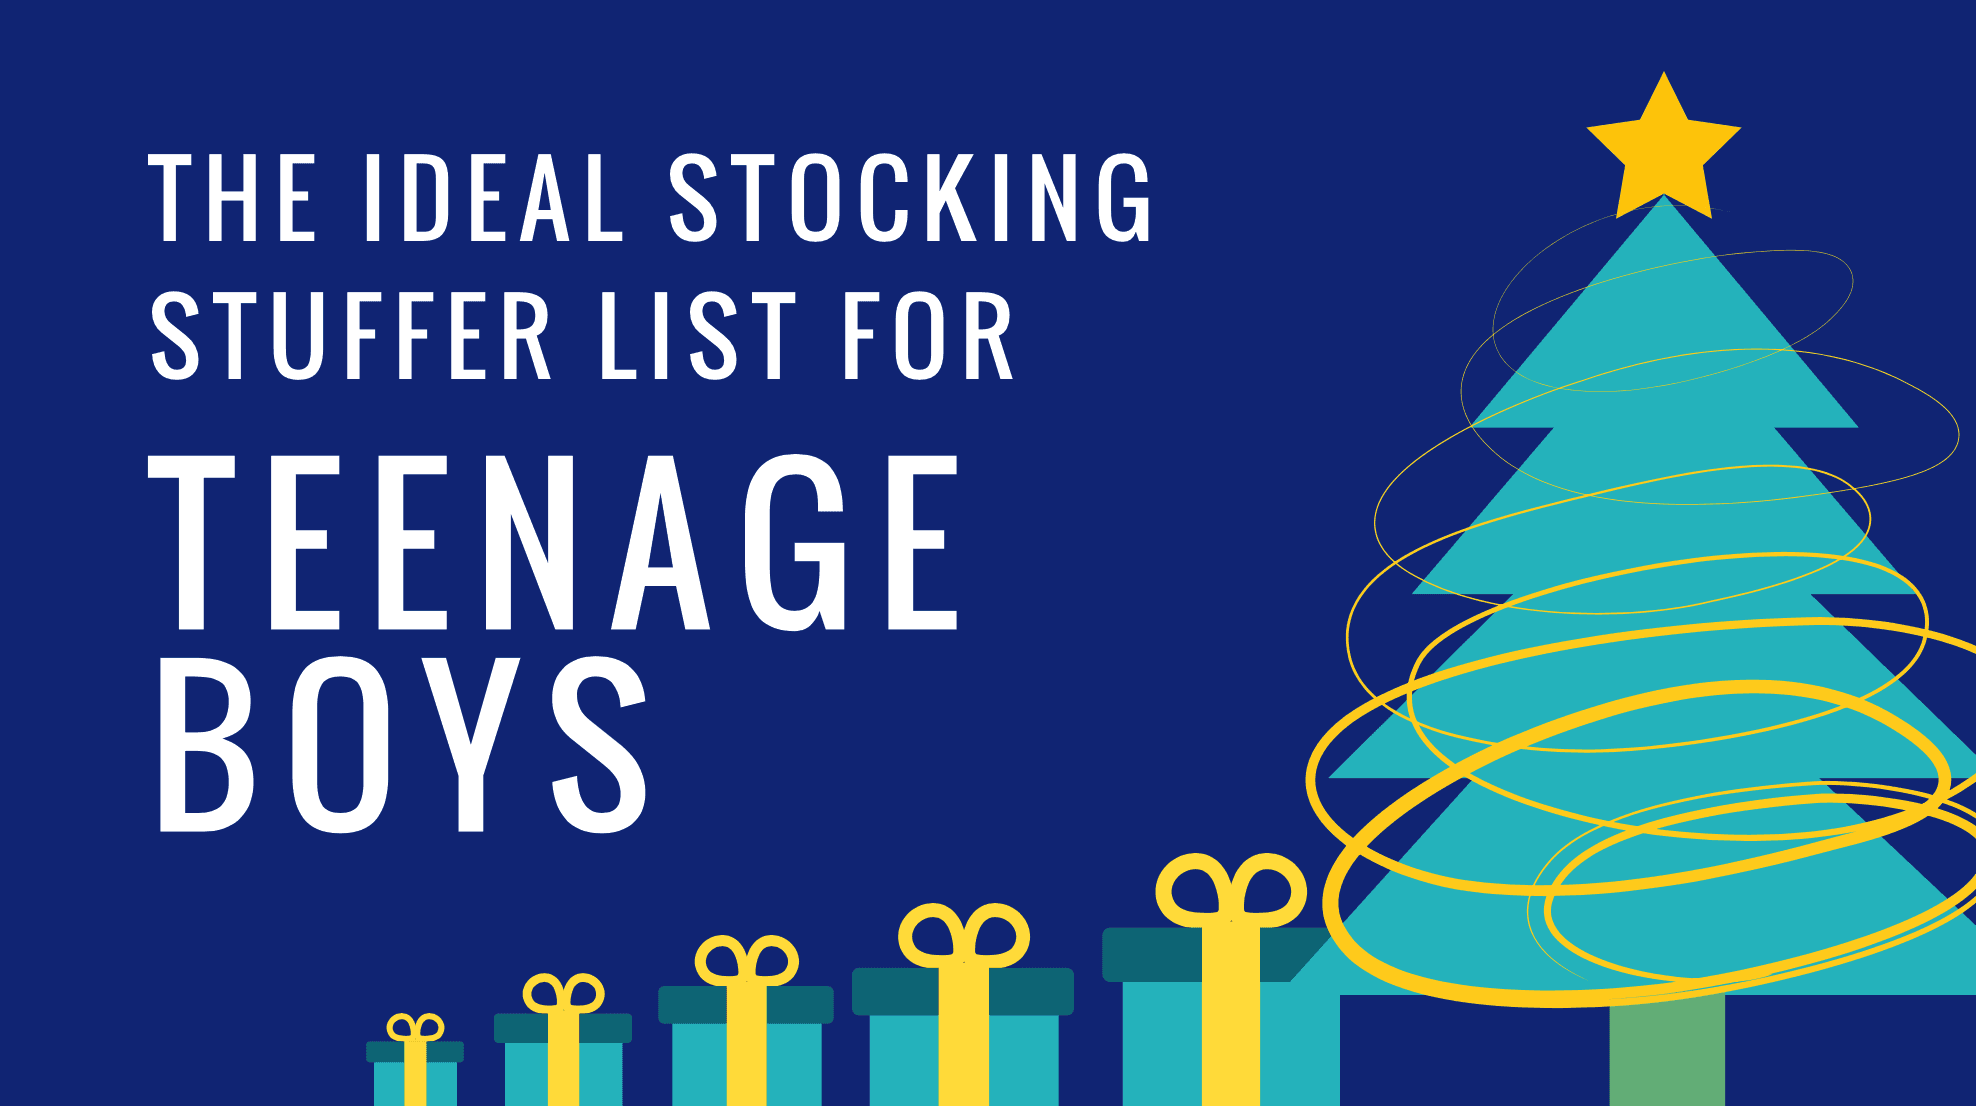 Stocking Stuffer Ideas For Teenage Boys Stuffers For